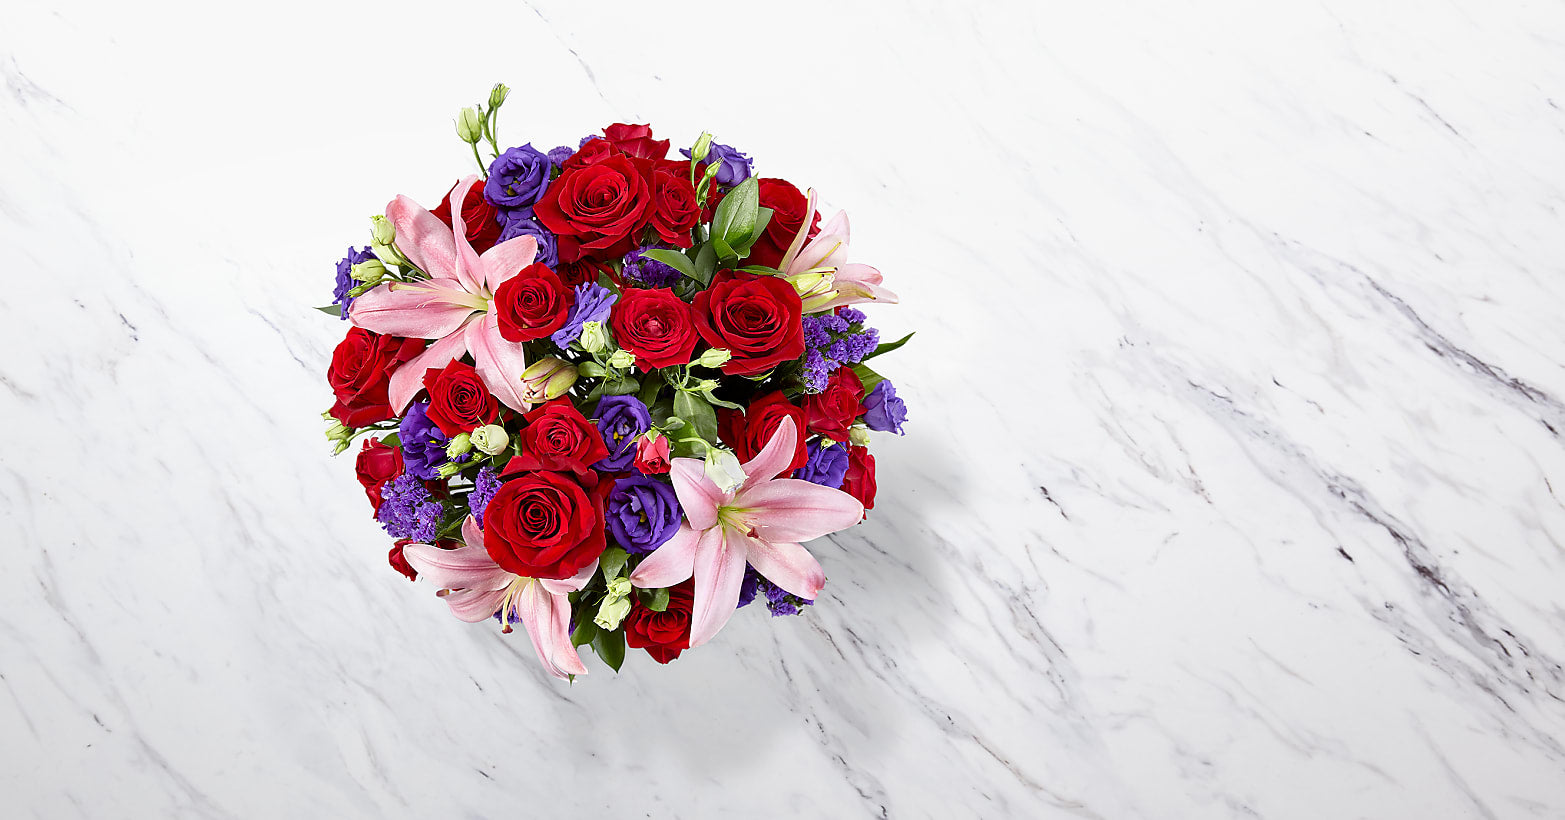 Truly Stunning Bouquet - Image 2 Of 3